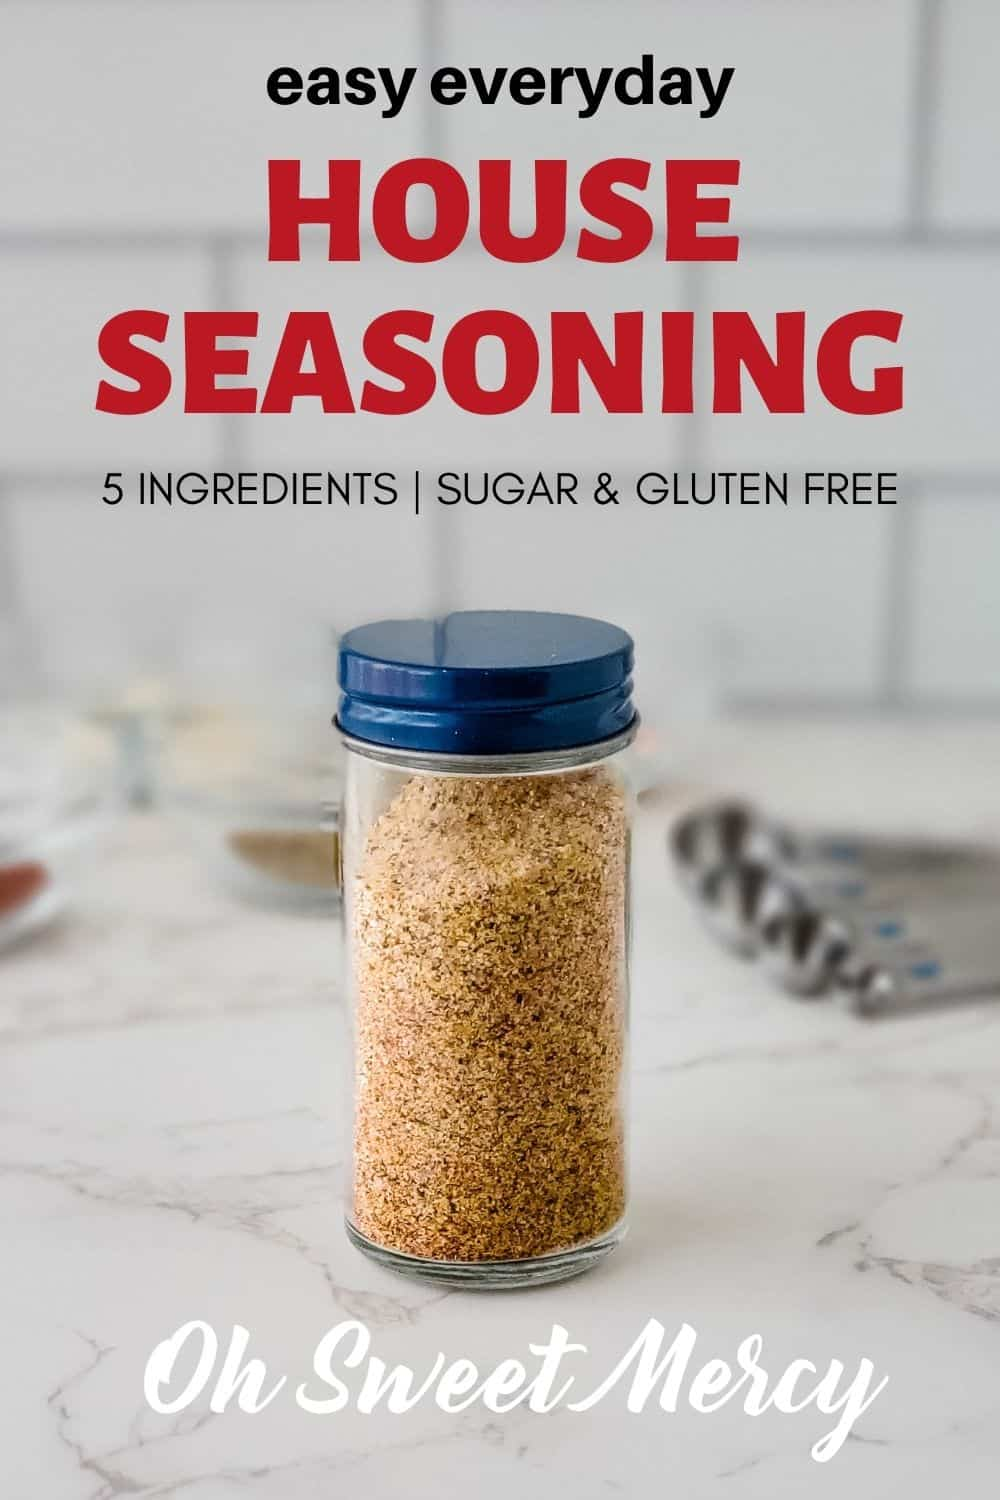 Keep this easy Everyday House Seasoning Blend on hand to make cooking a breeze. No need to grab a bunch of spices and seasonings, just grab this one jar and season away. Great on meats, veggies, eggs, soups and more. #thm #homemade #seasoningblends #houseseasoning #sugarfree #glutenfree